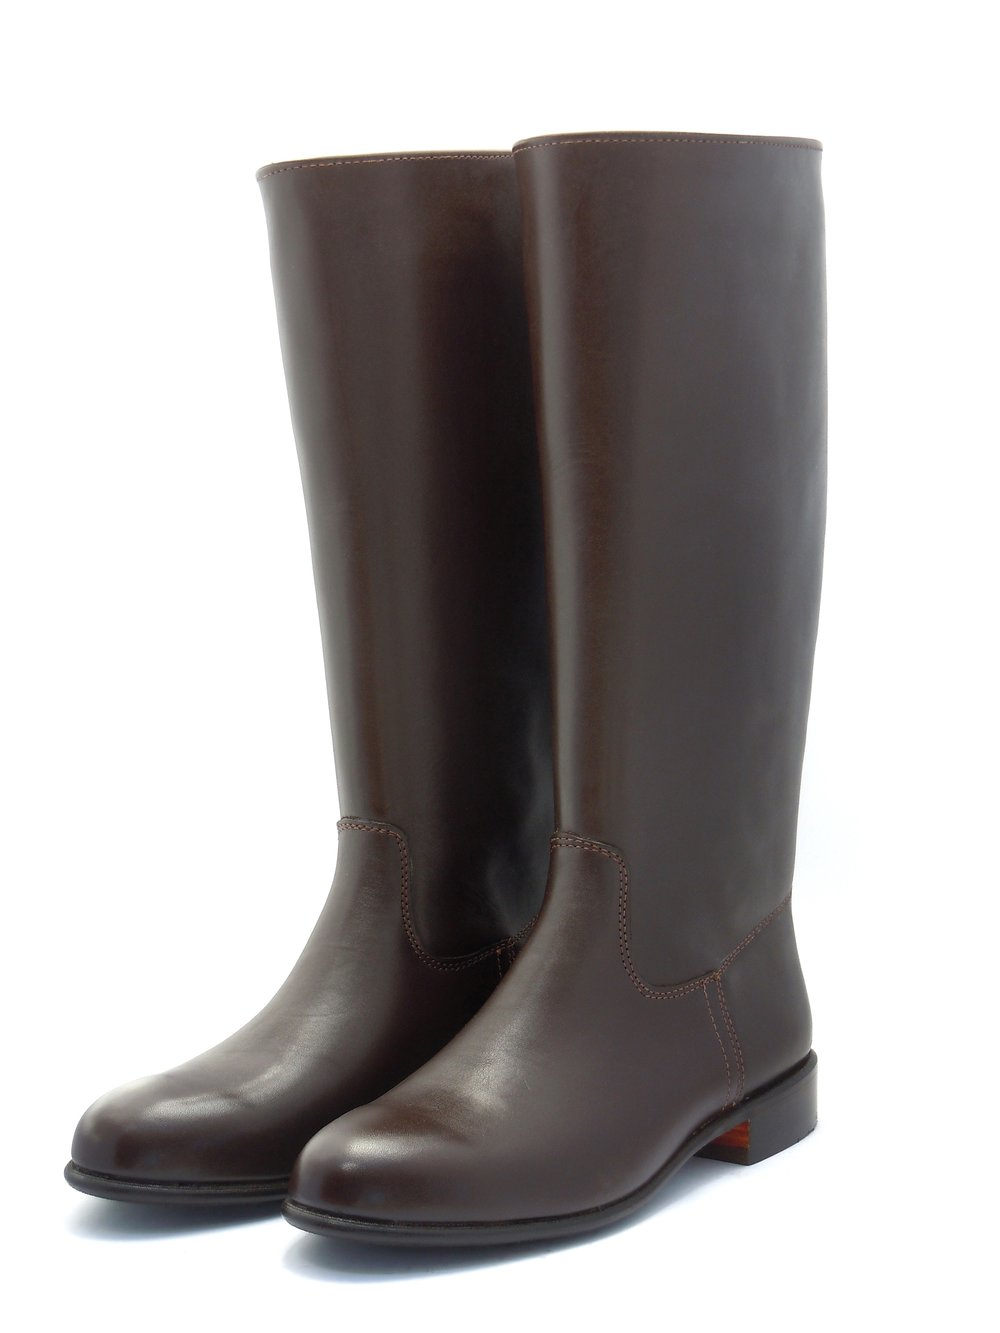 Polocrosse Boots with Flat Tops (Pull-On)